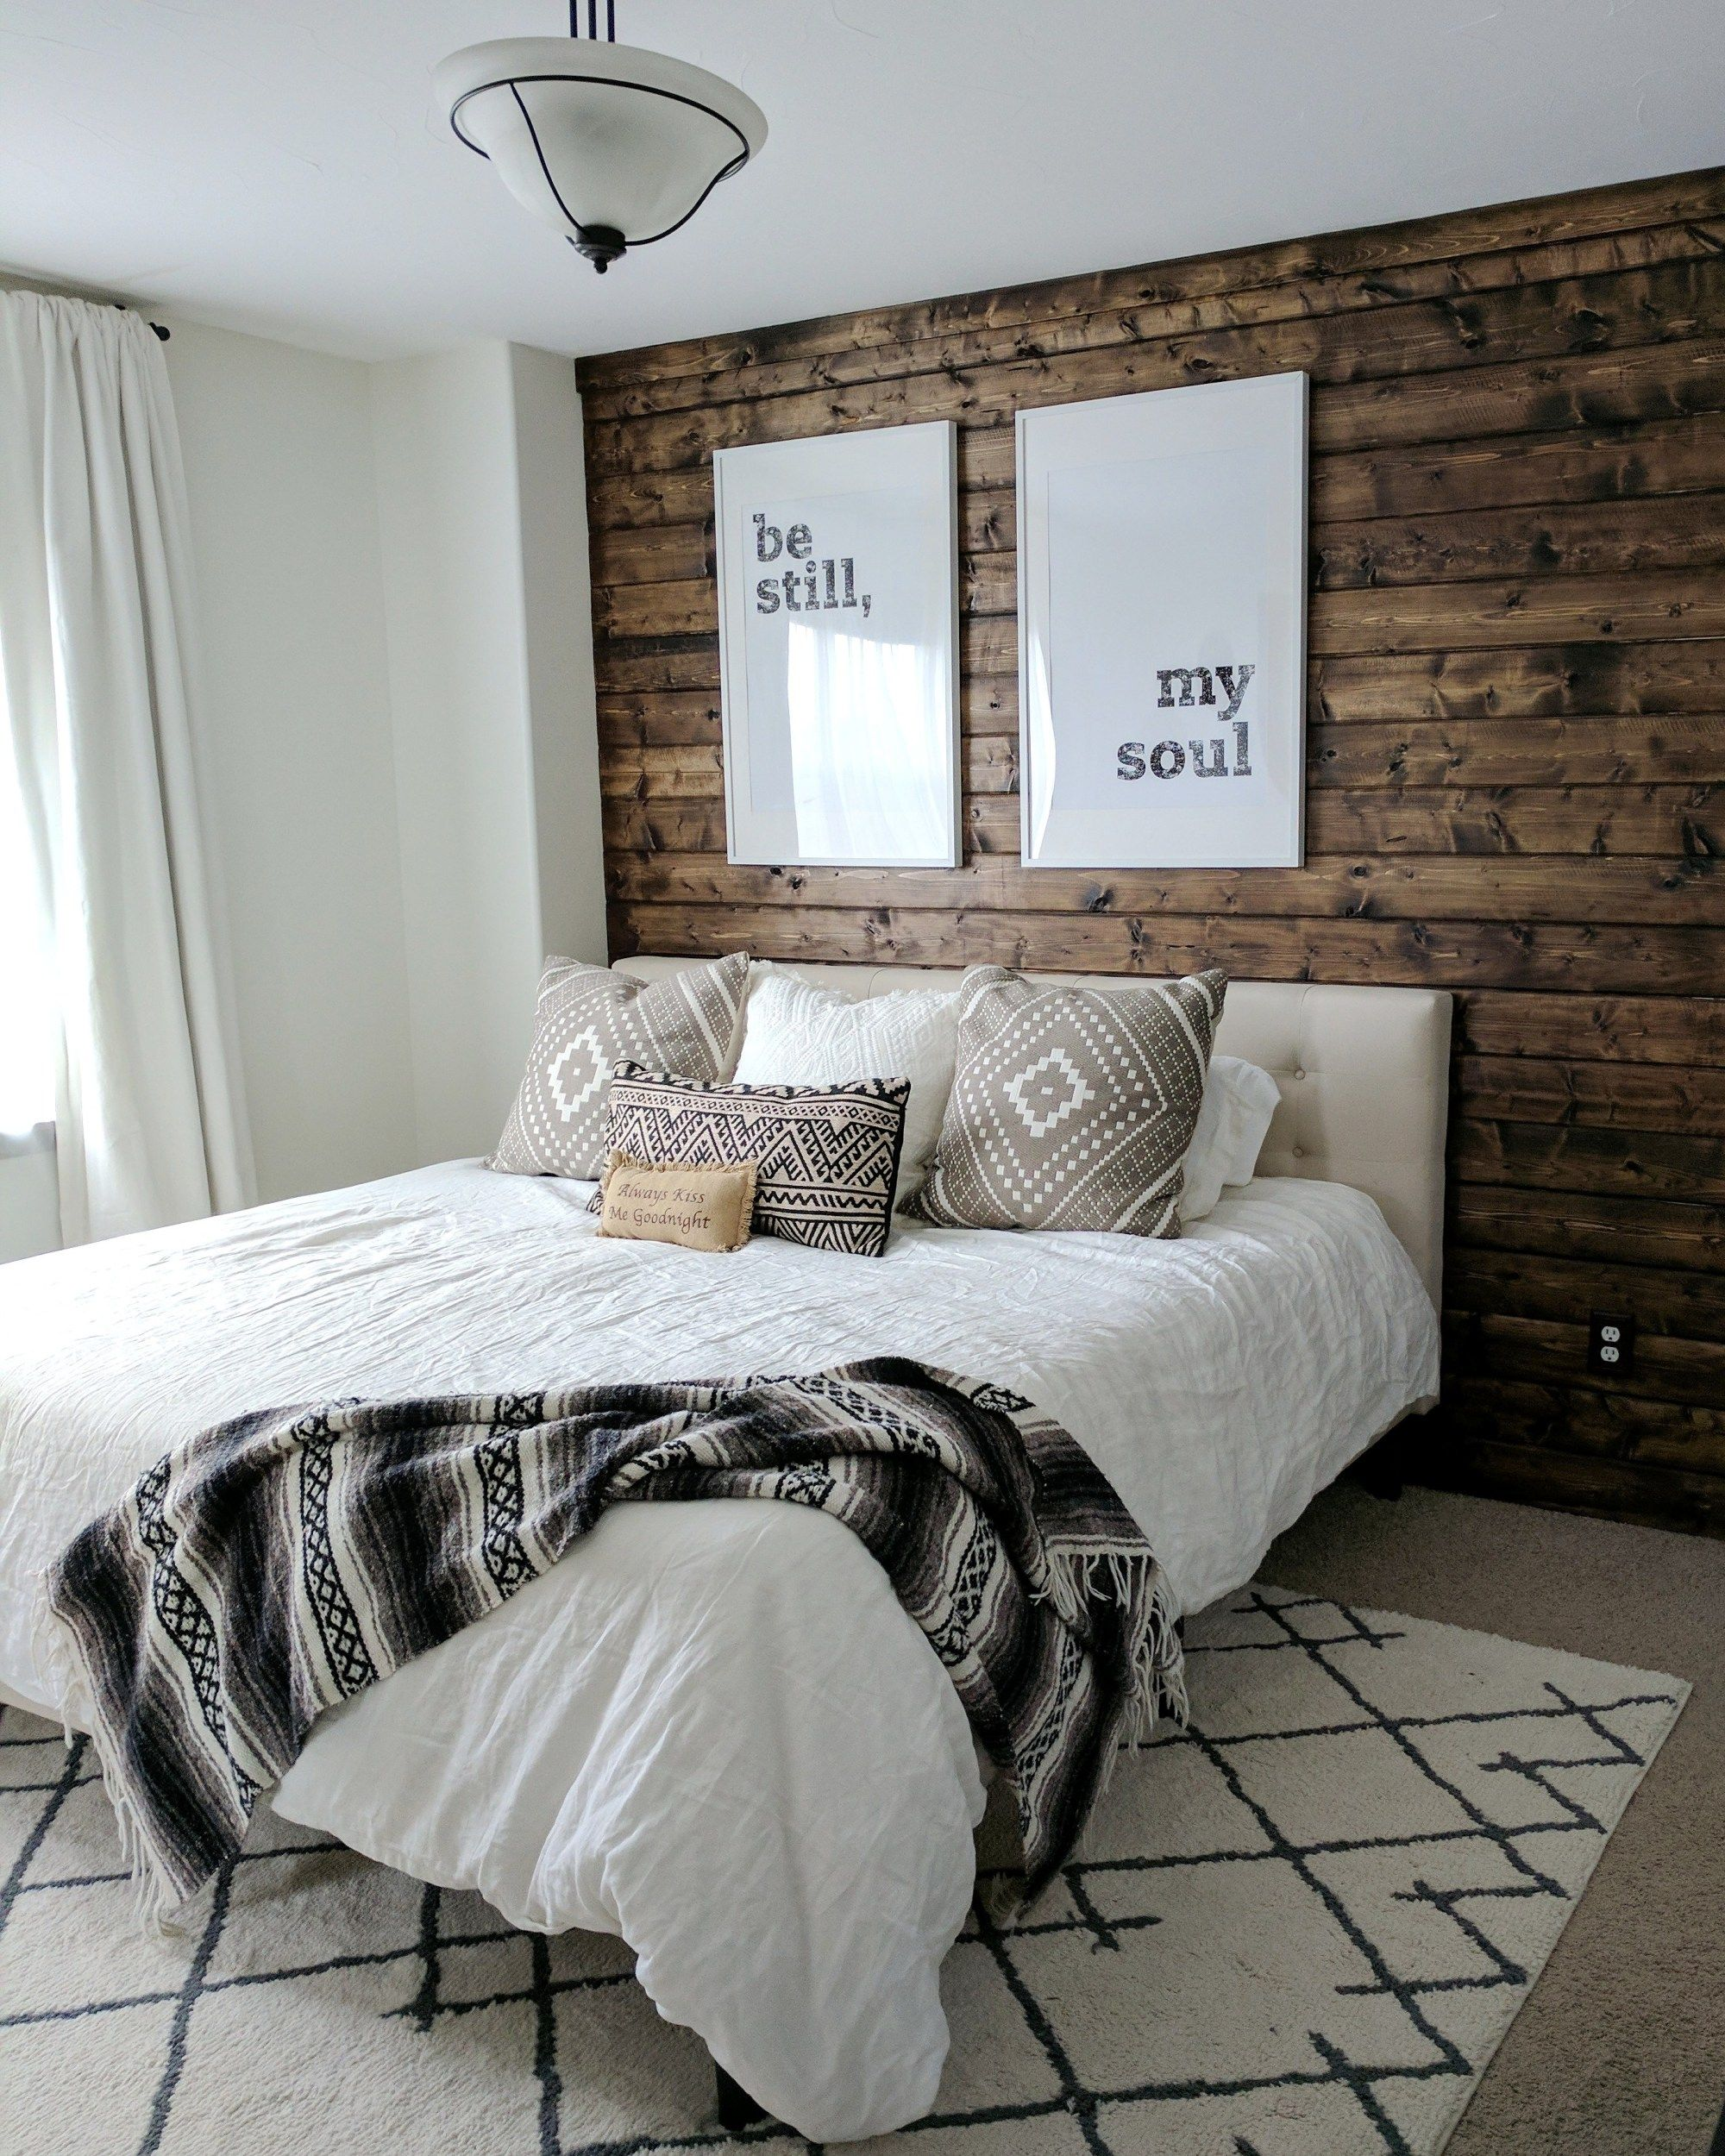 How To Build A Wood Plank Accent Wall Easy Diy Tutorial Yellow